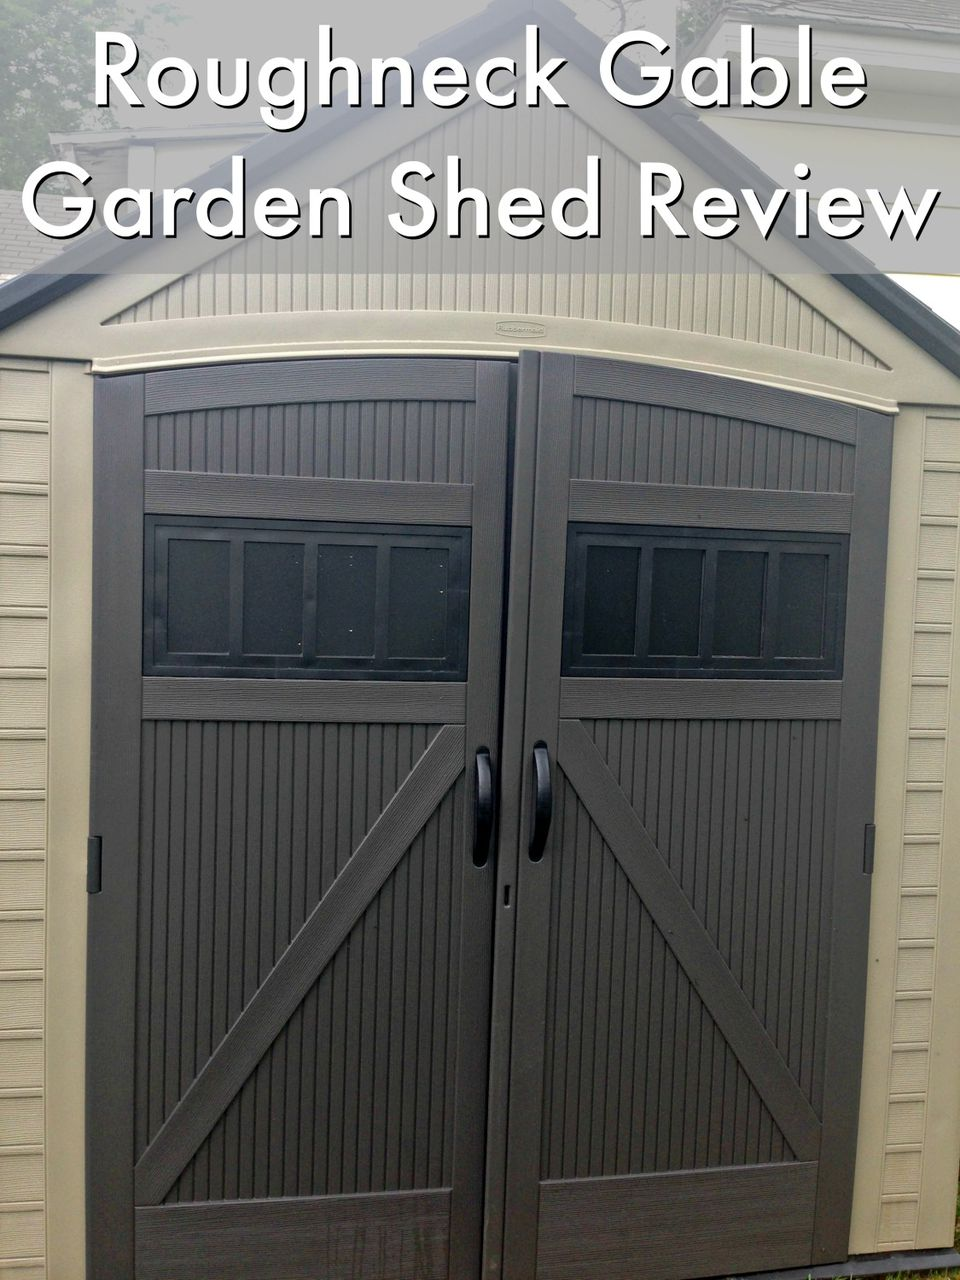 Garden shed review - The Roughneck Gable Garden Shed by Rubbermaid